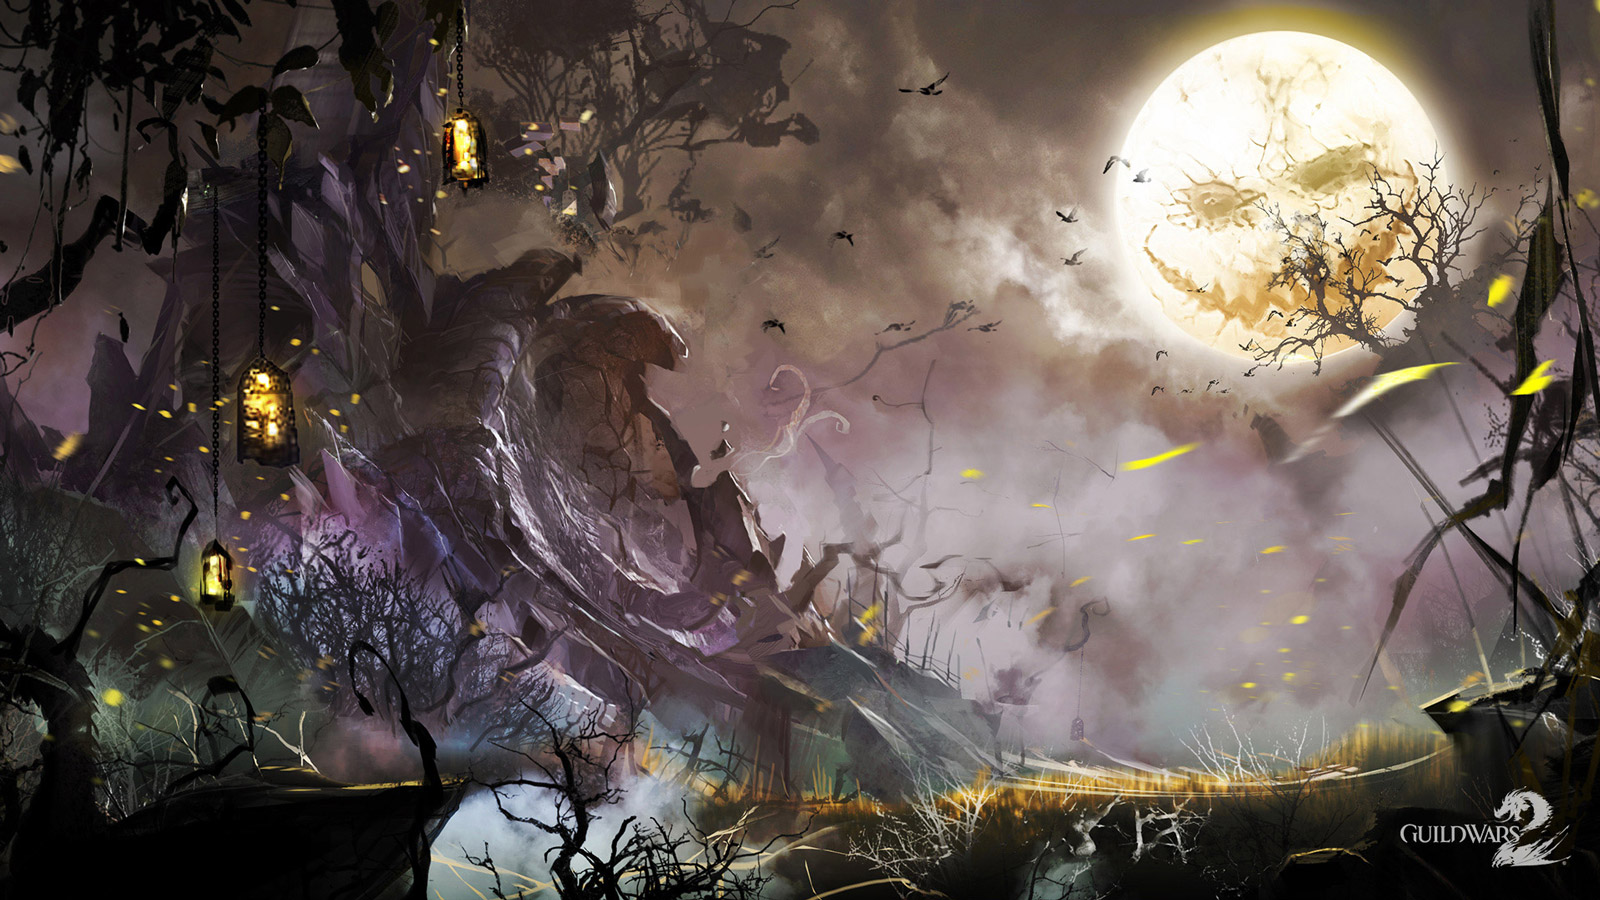 Free Guild Wars 2 Wallpaper in 1600x900